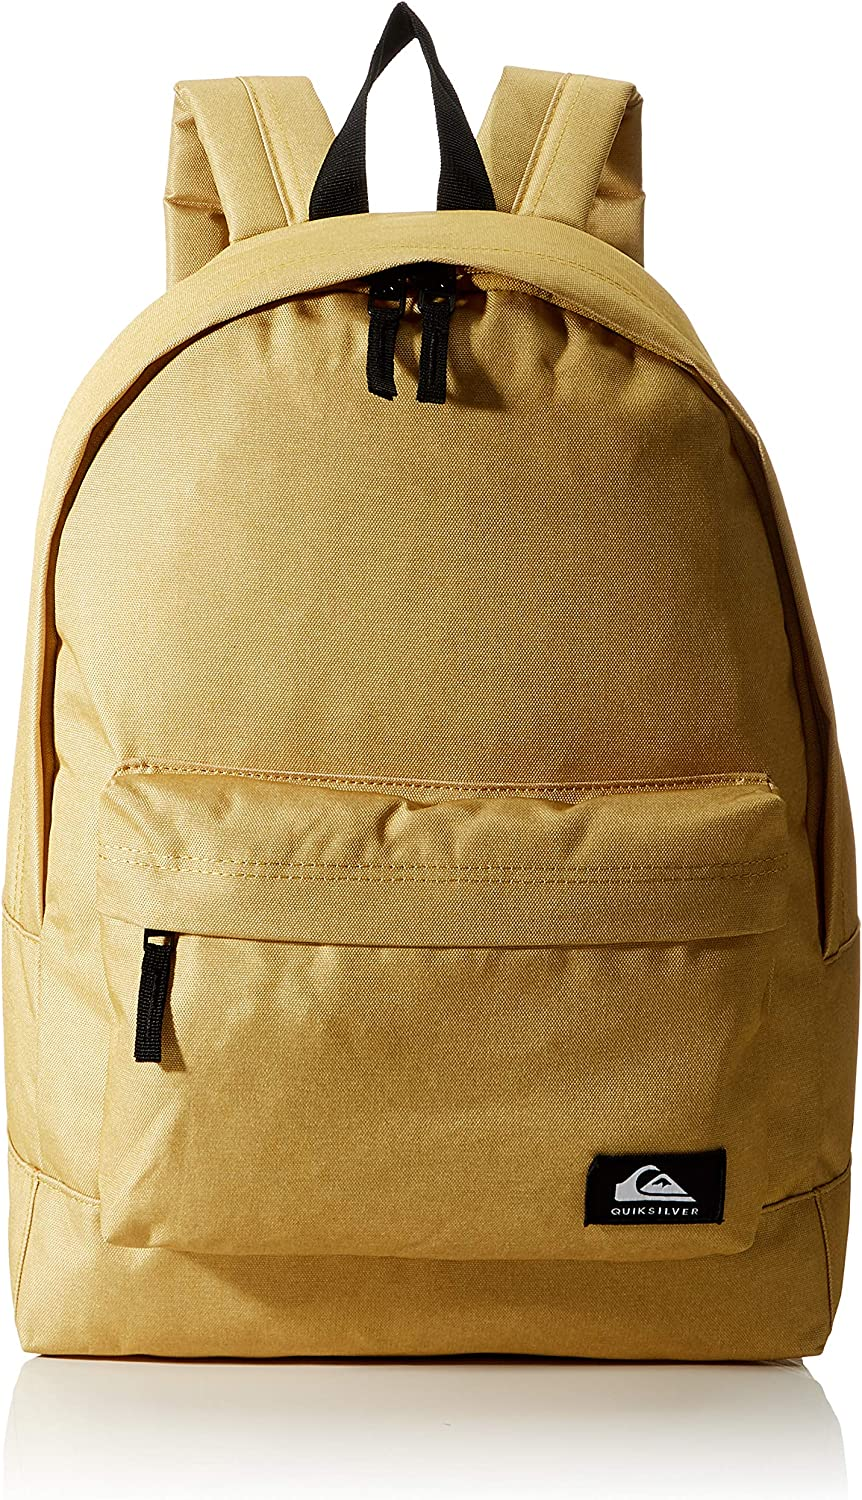 Poster Everyday Sac /à dos. Quiksilver Everyday Poster